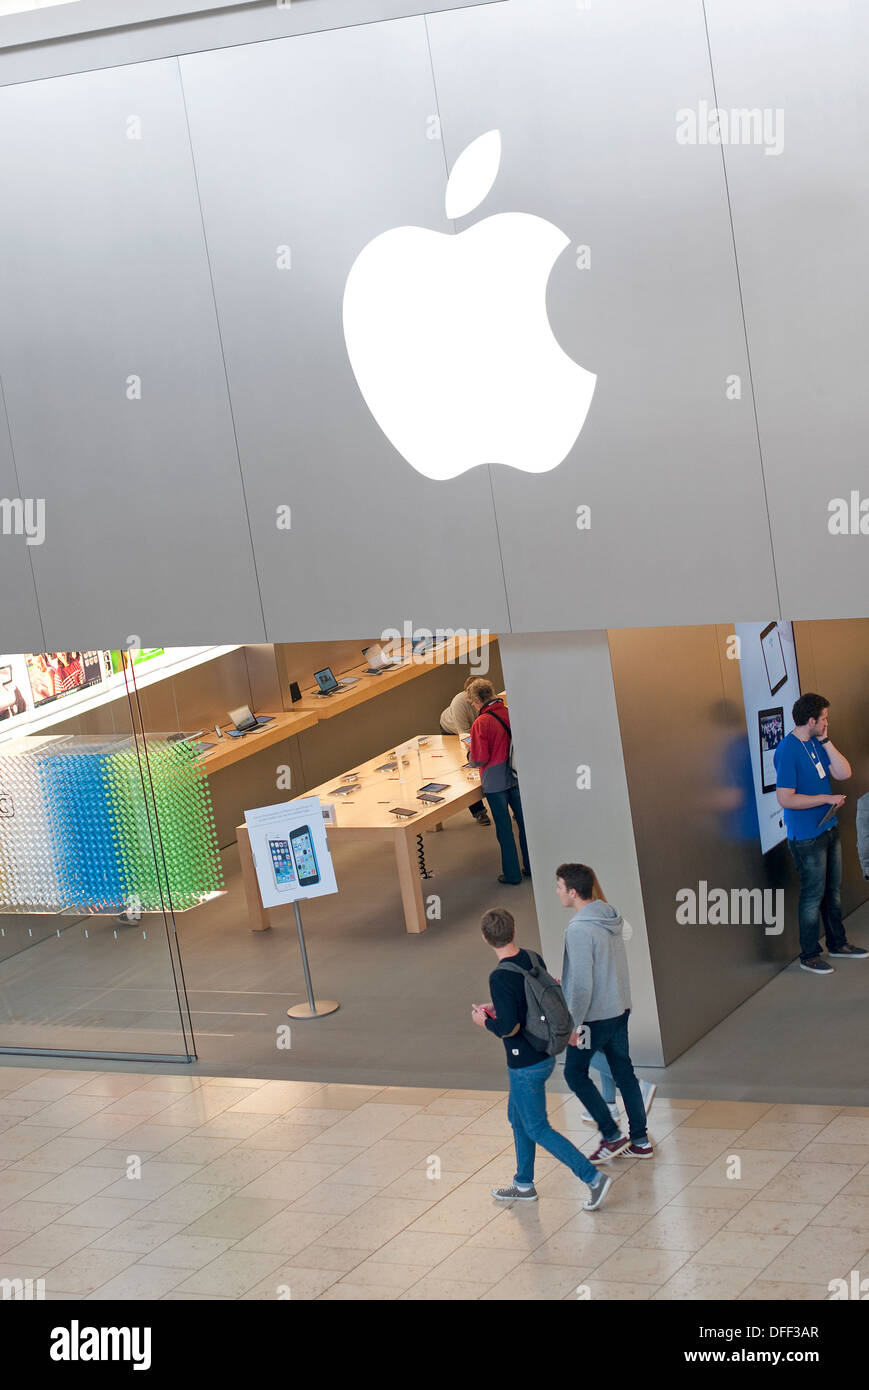 apple computers store, norwich, norfolk, england - Stock Image